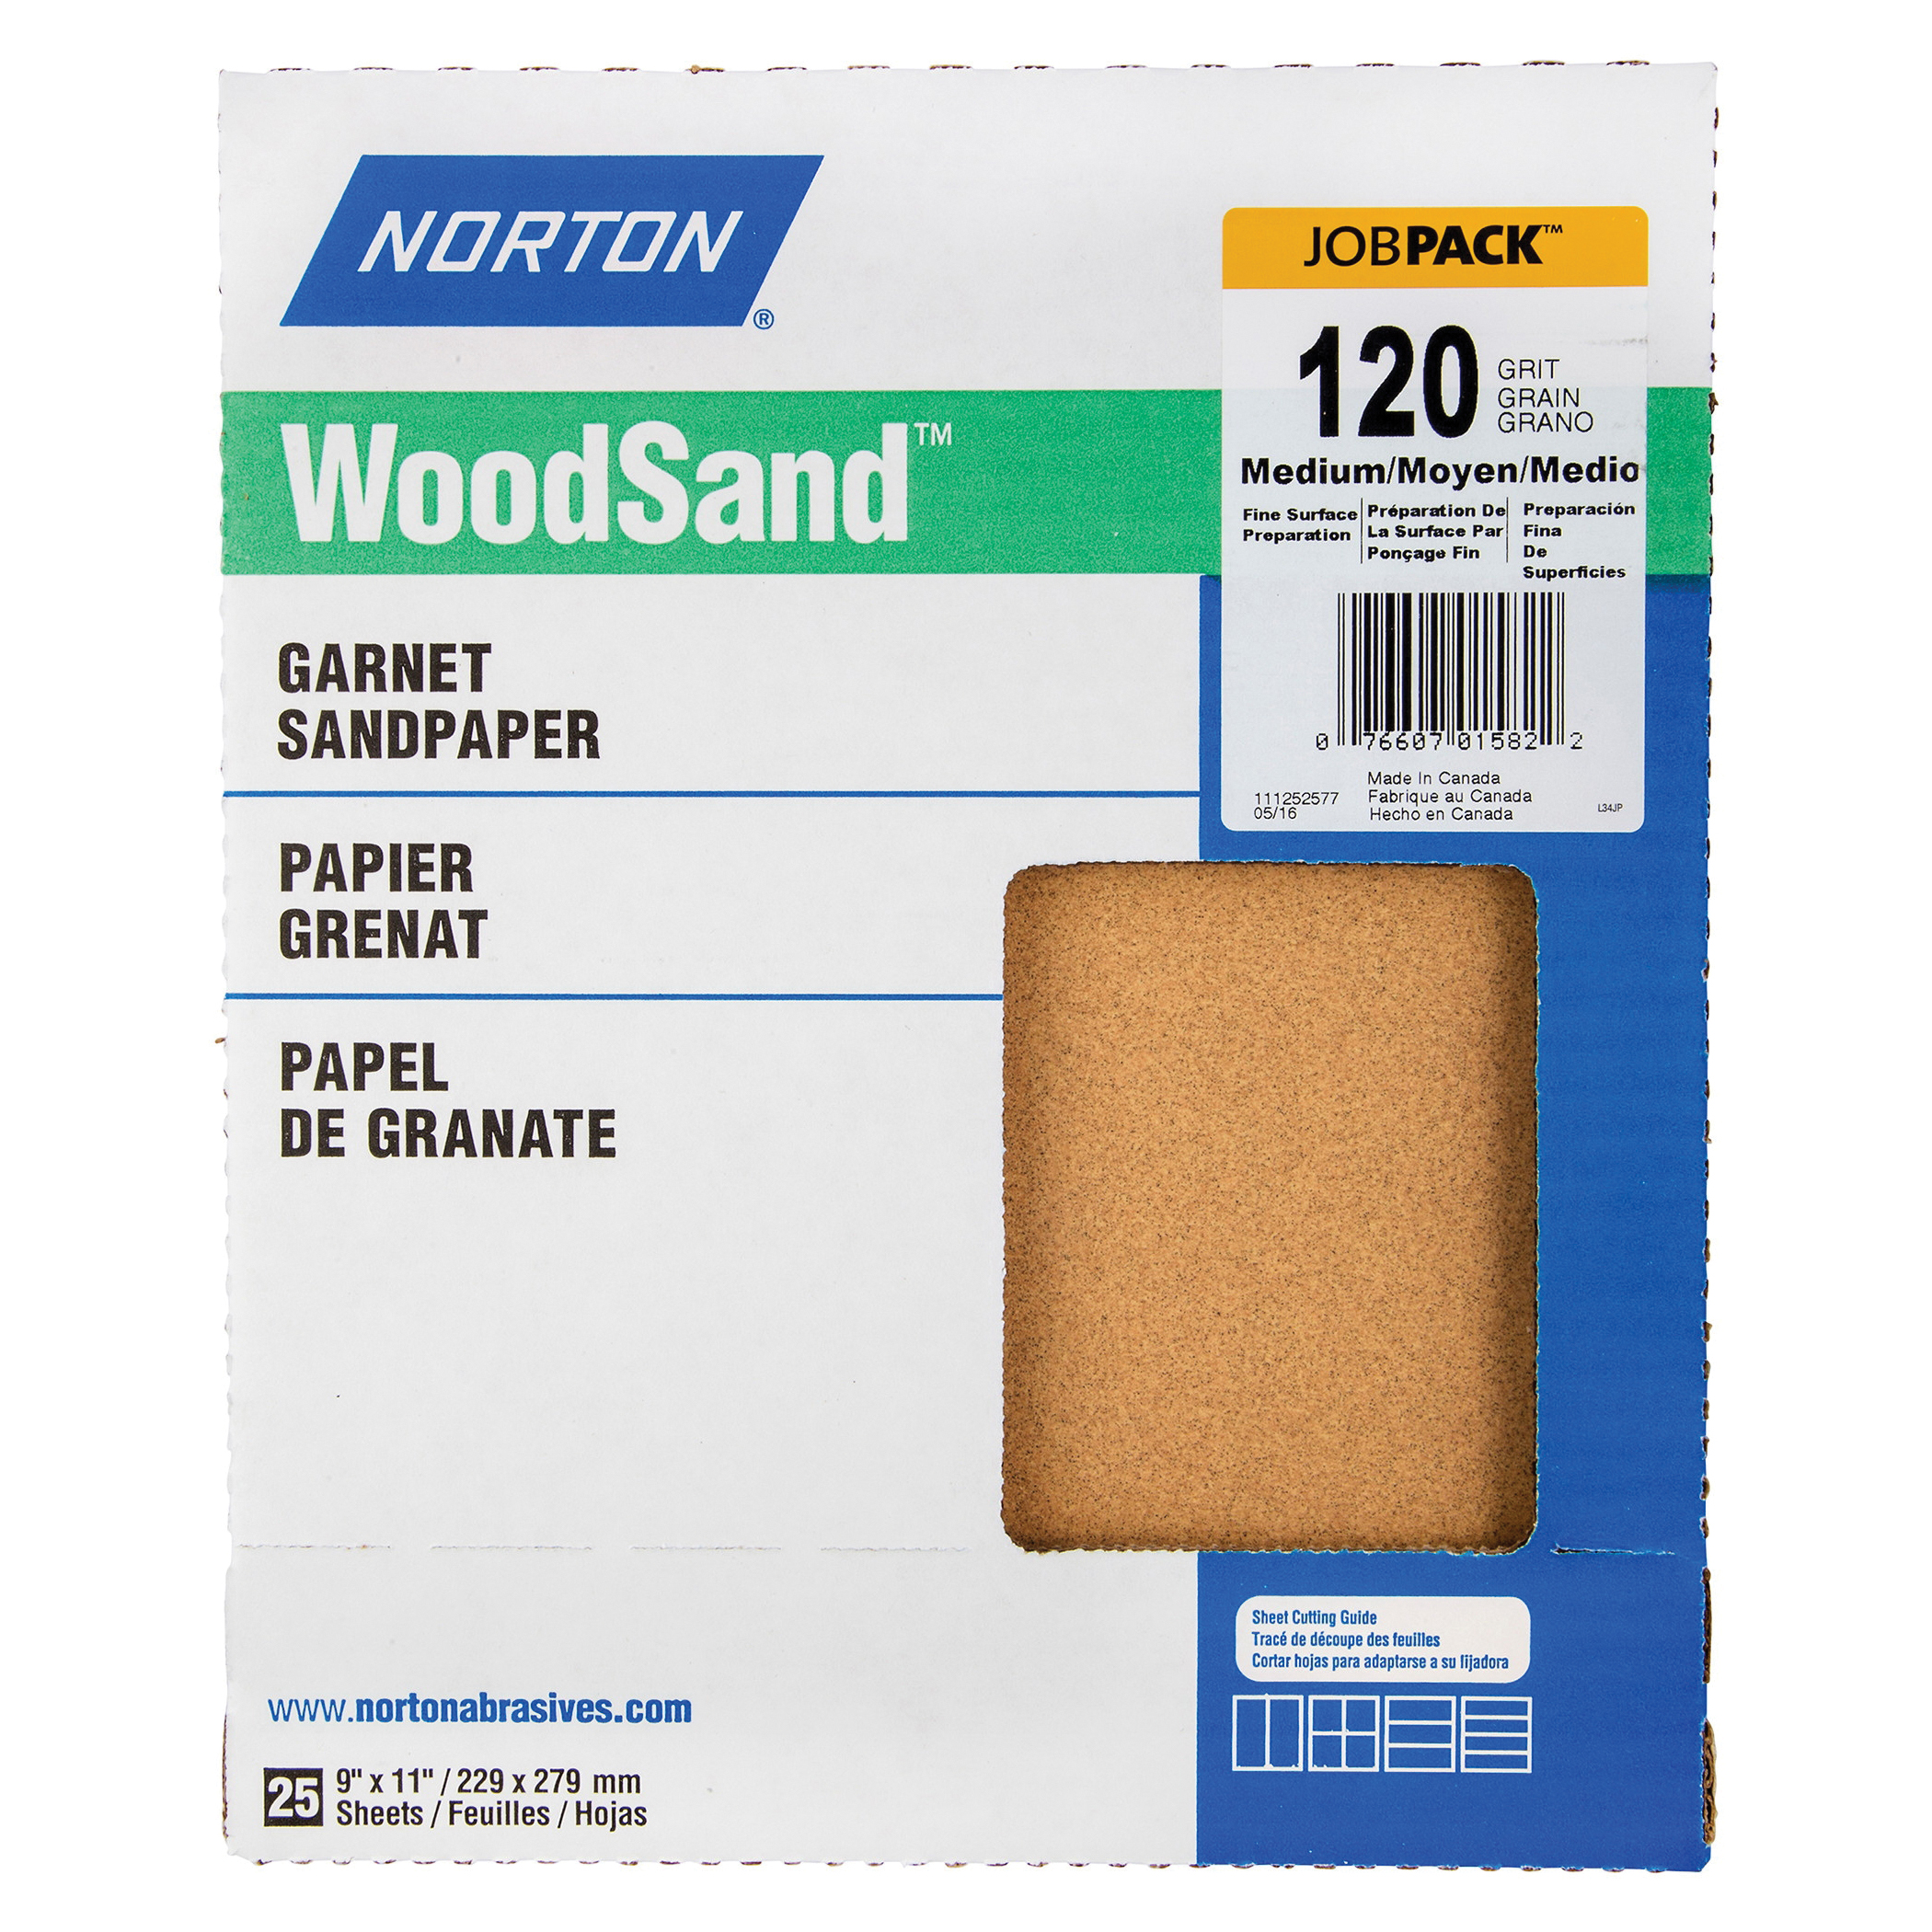 Norton® WoodSand™ Job Pack™ 07660701582 A513 Coated Sandpaper Sheet, 11 in L x 9 in W, 120 Grit, Medium Grade, Garnet Abrasive, Paper Backing